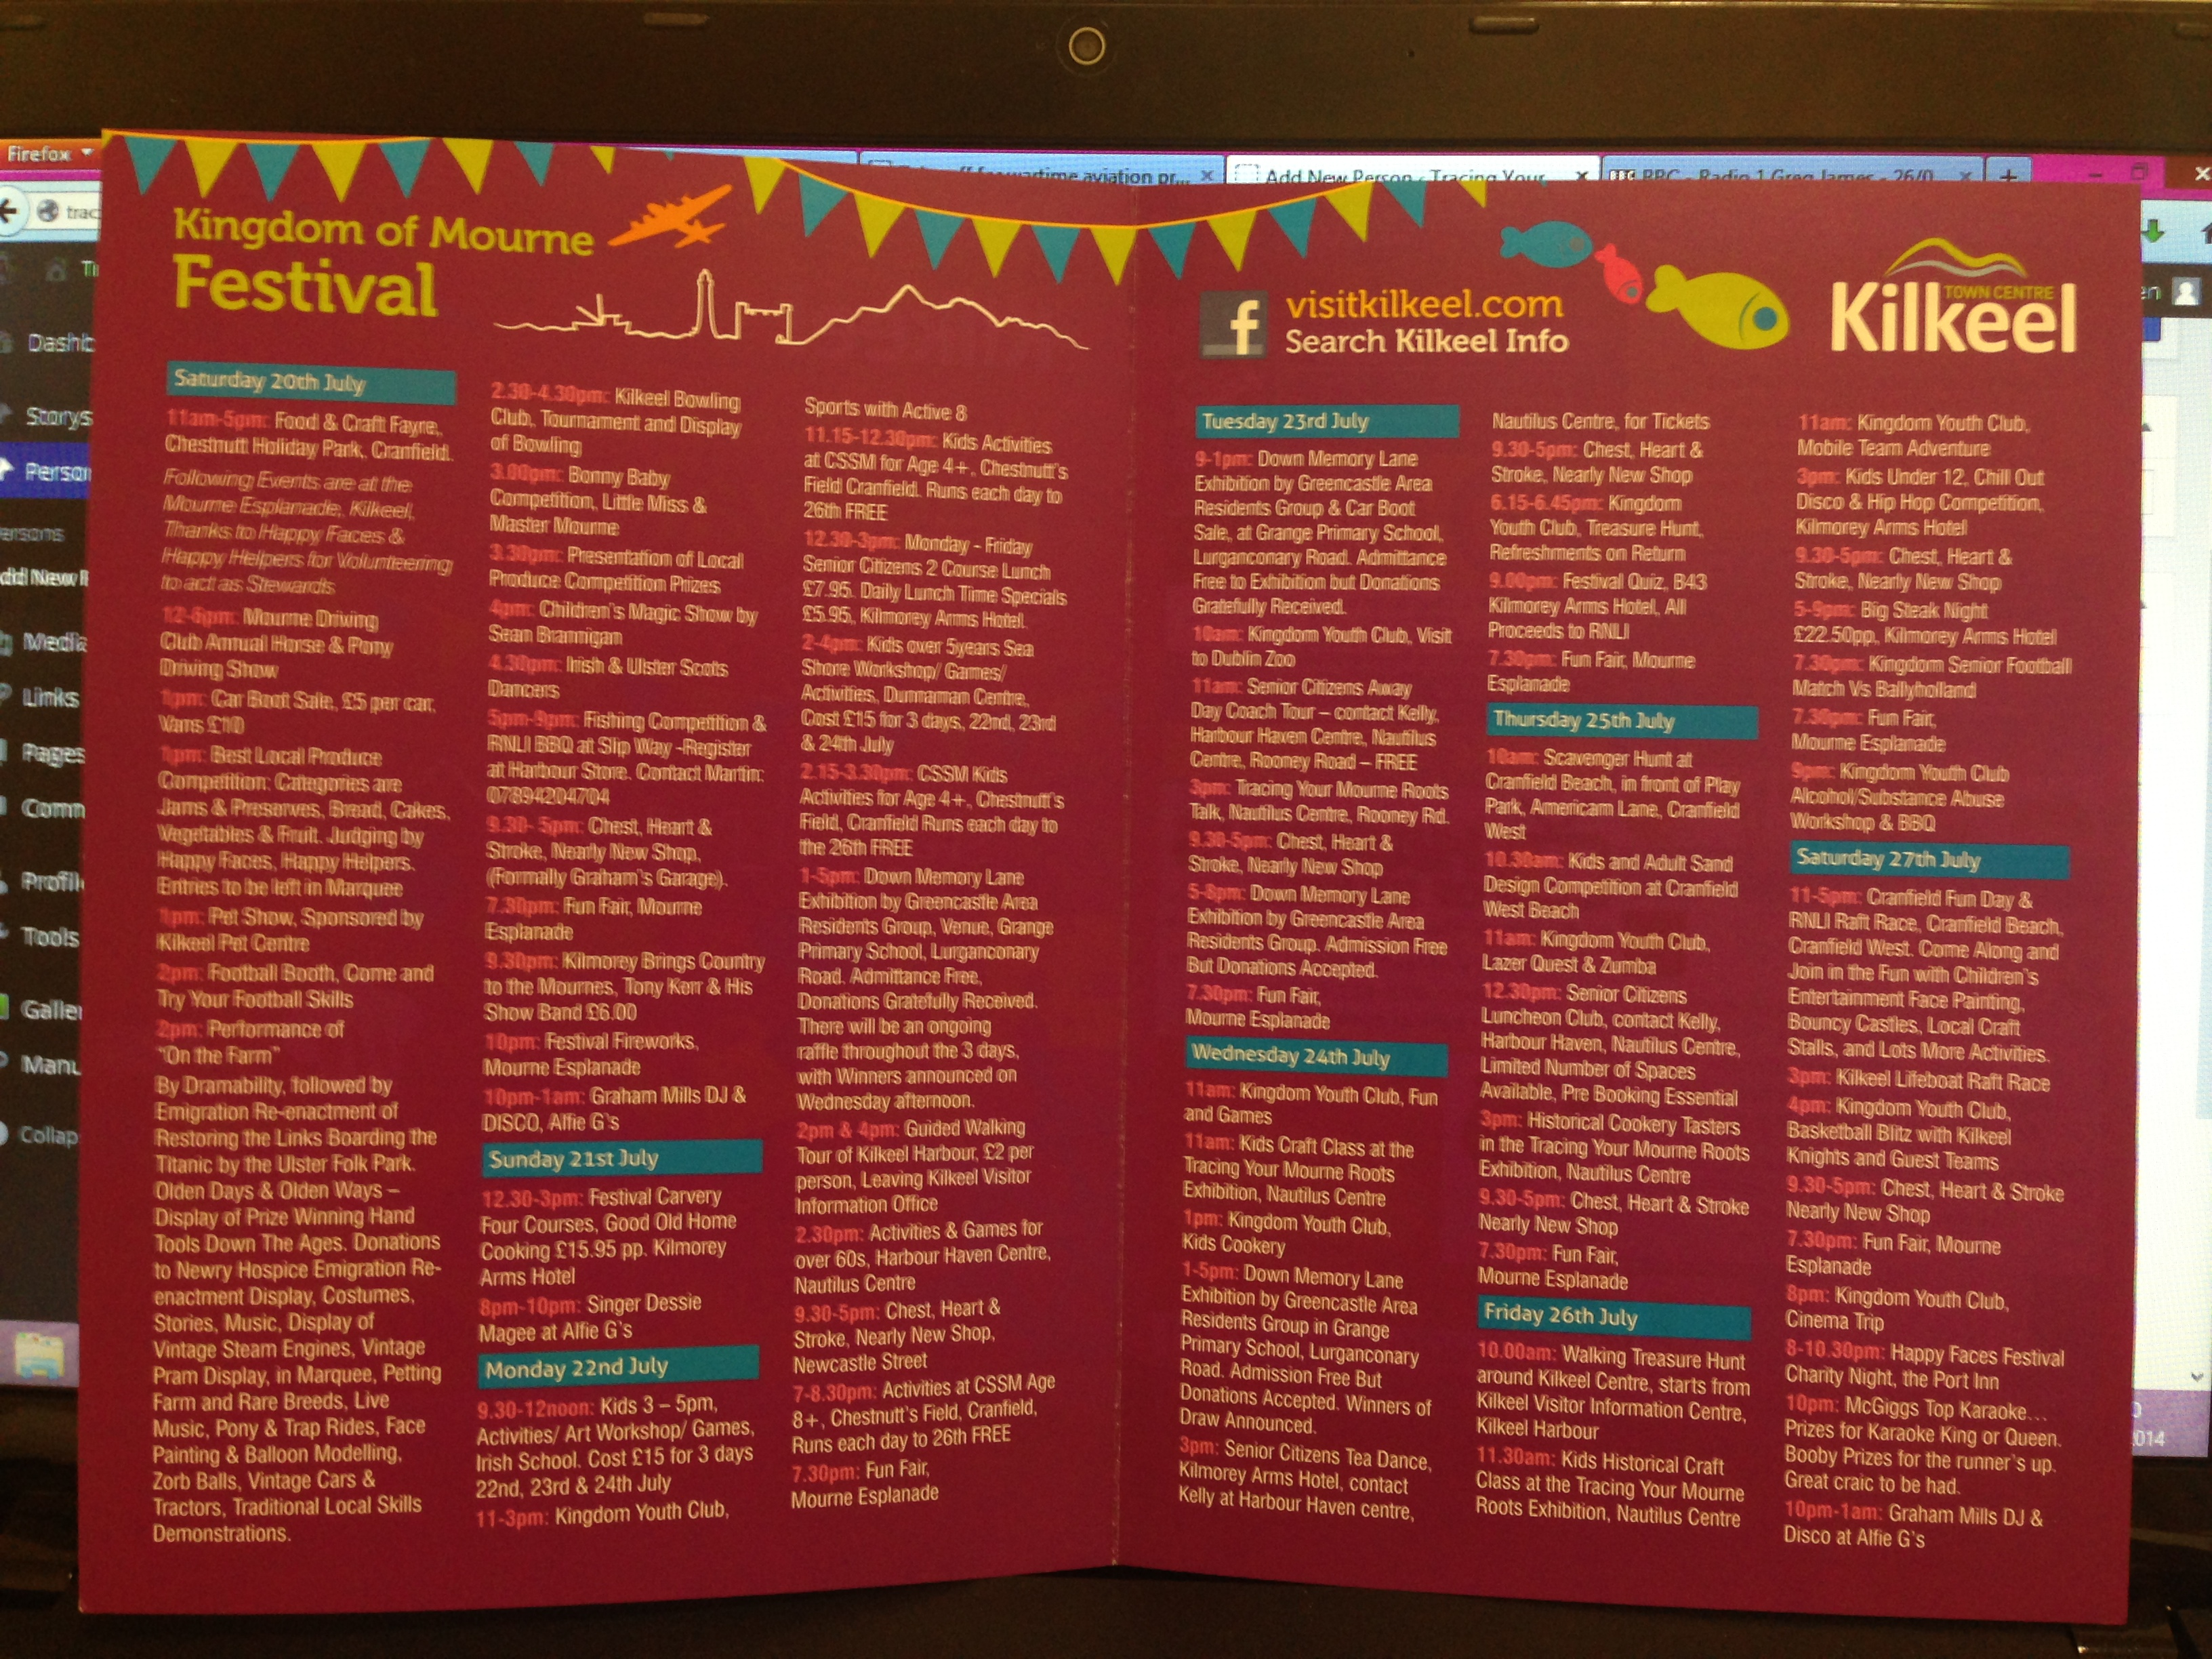 Kingdom of Mourne Festival. TYMR organised a programme of events for this festival in July 2013